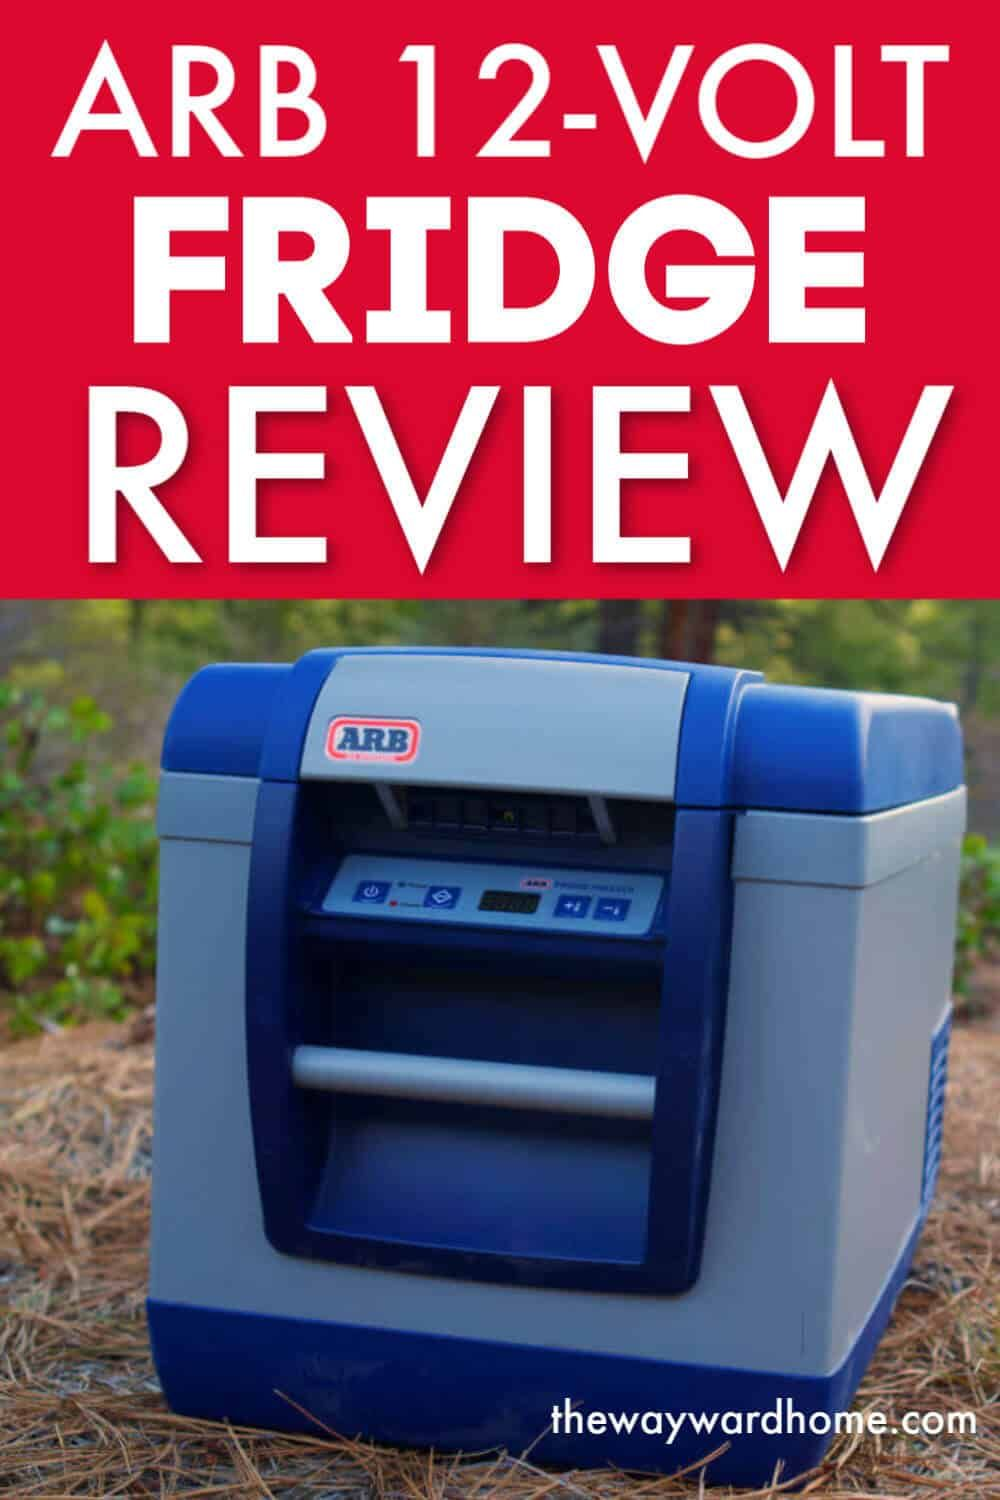 Arb Fridge Review The Best 12 Volt Refrigerator For Van Life Camping Gear Camping Lanterns Camping Equipment